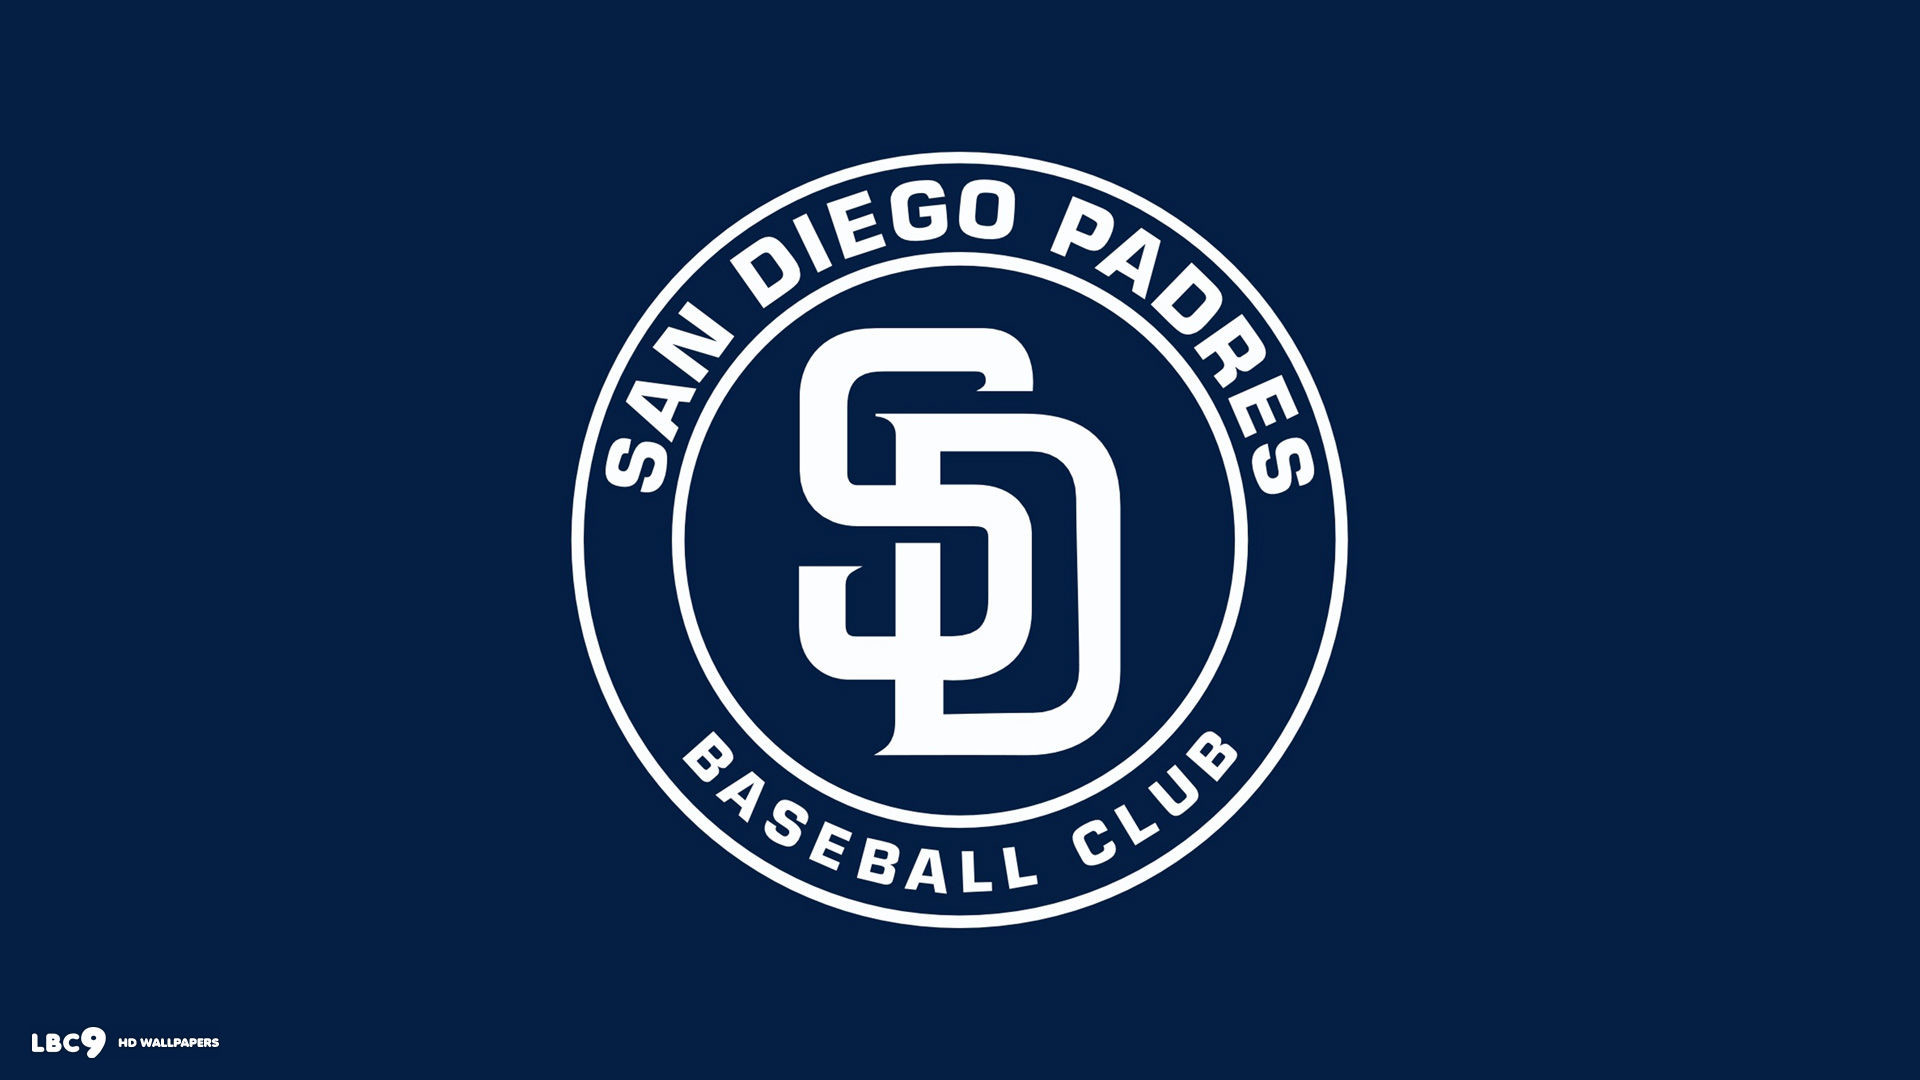 I Love You Too - San Diego Padres Background , HD Wallpaper & Backgrounds